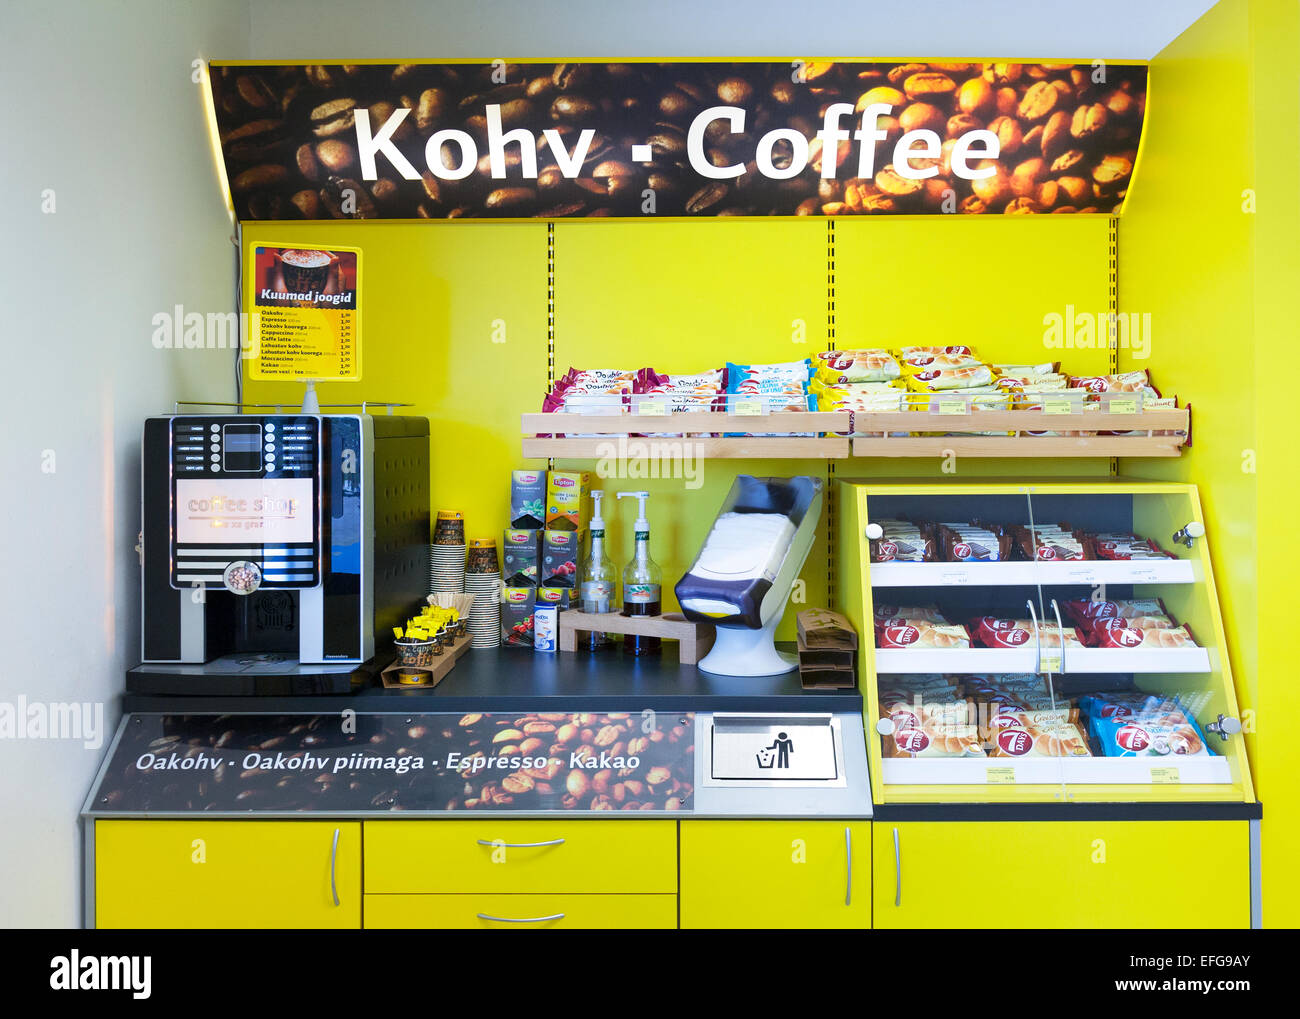 Gas station shop with coffee maker, shelves and food in Estonia. Coffee machine and fast food. Snacks. Furniture. - Stock Image